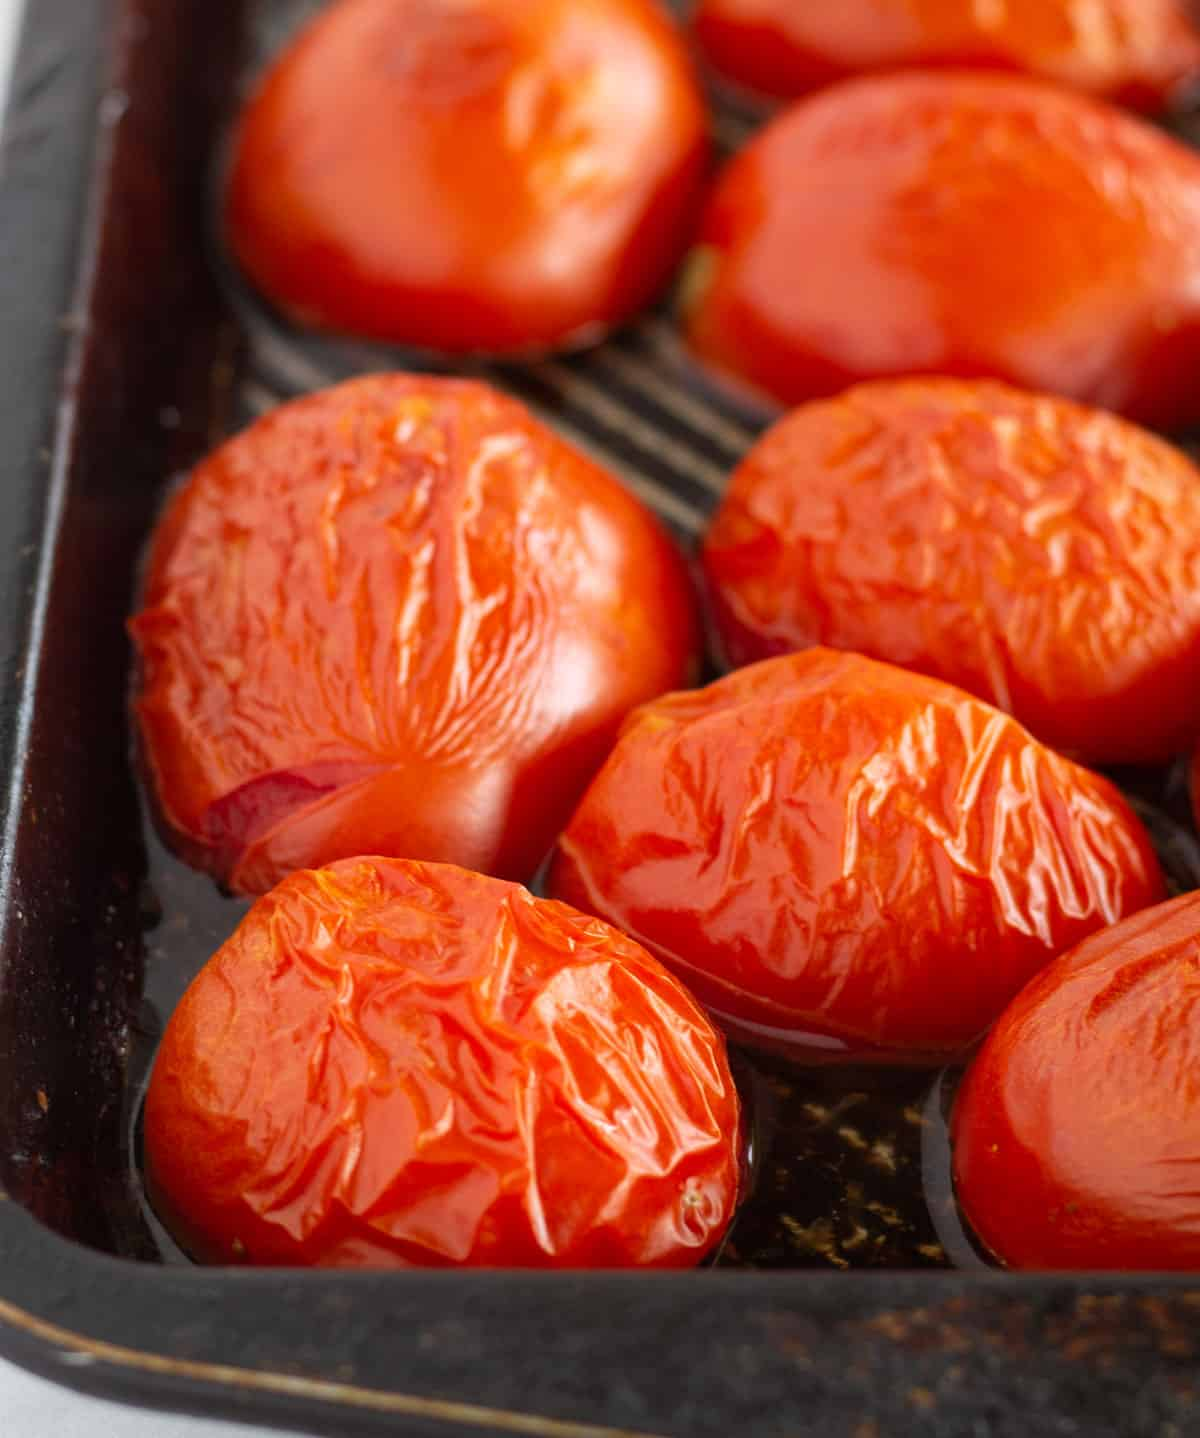 broiled tomatoes on baking sheet